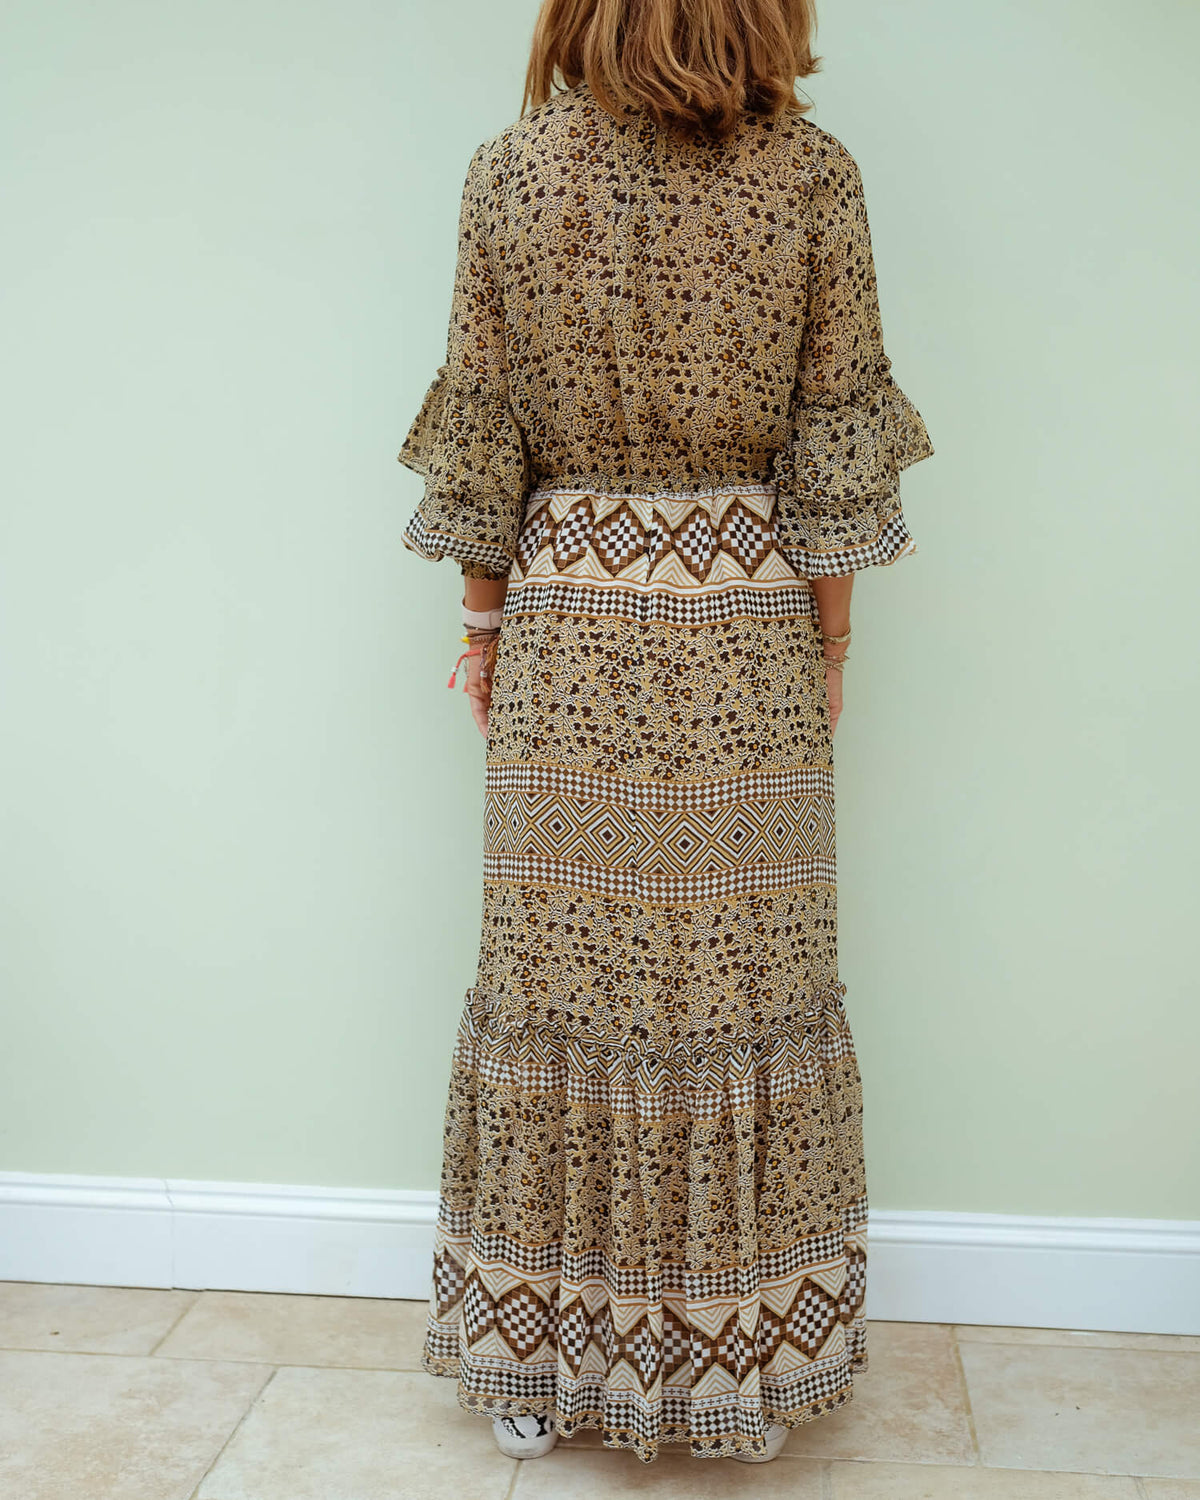 M Mitella dress in sienna